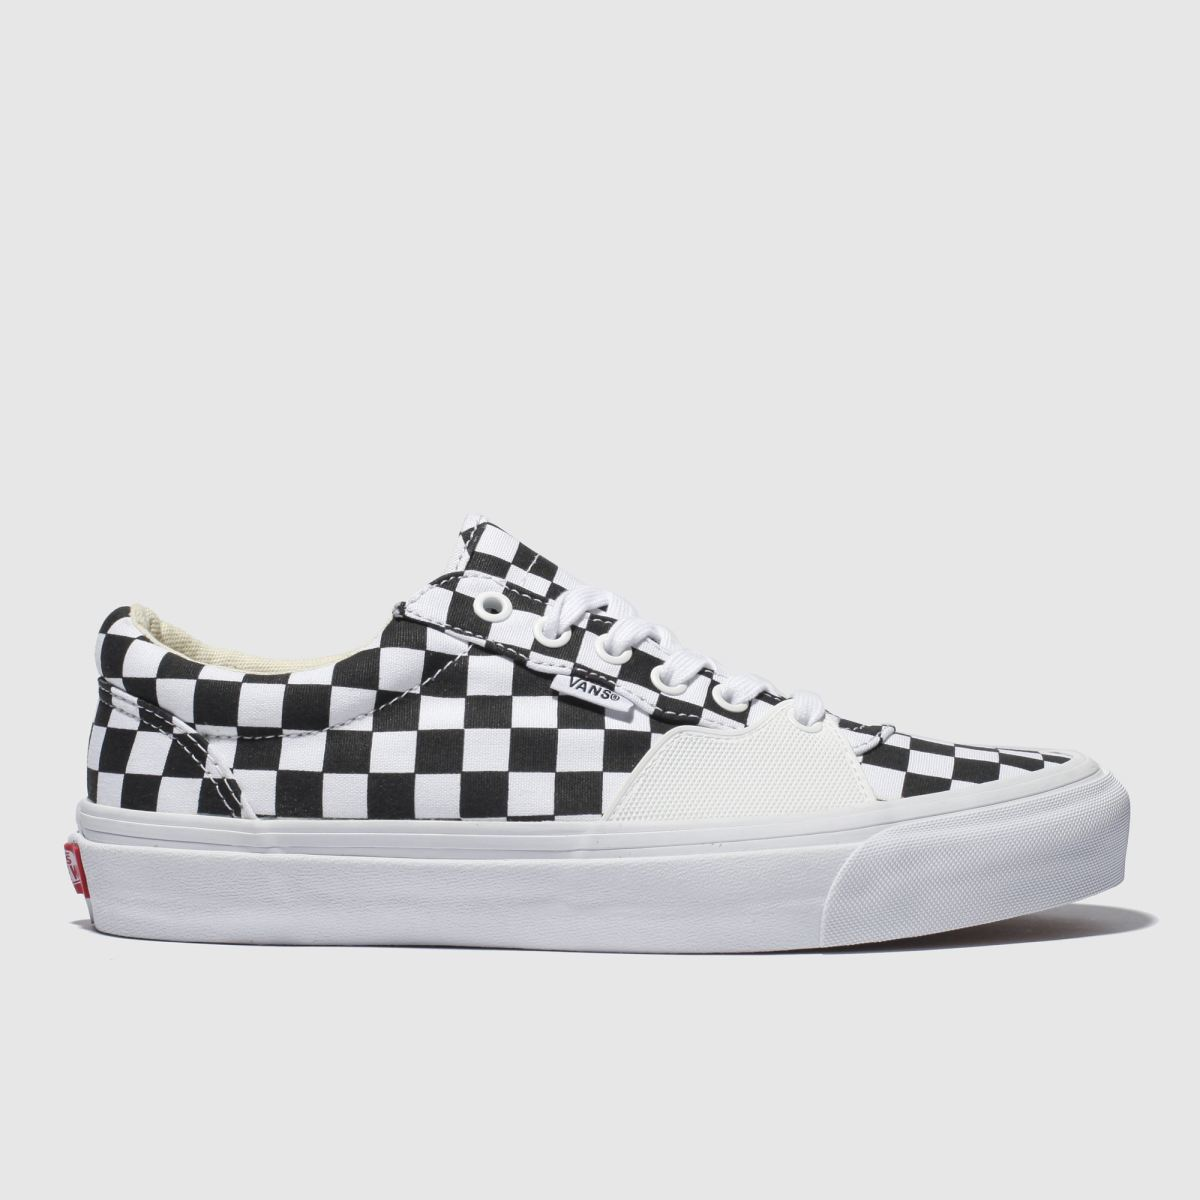 Vans White & Black Style 205 Trainers